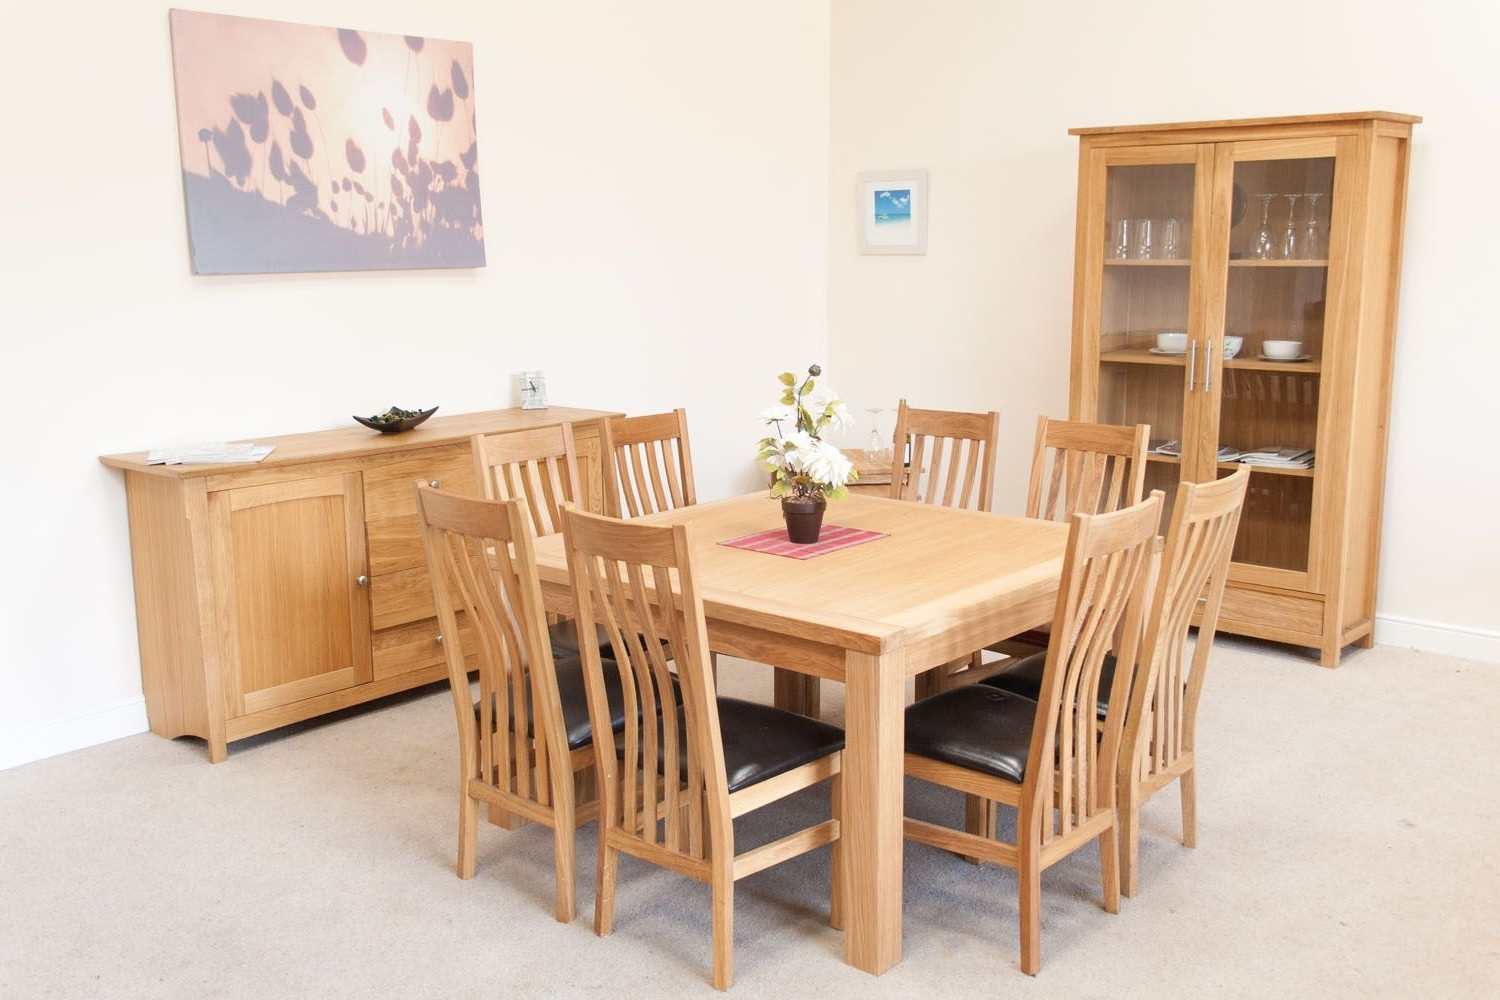 Minsk Large Square Oak Dining Table 8 Seater Pertaining To Newest Oak Dining Tables And 8 Chairs (View 3 of 25)